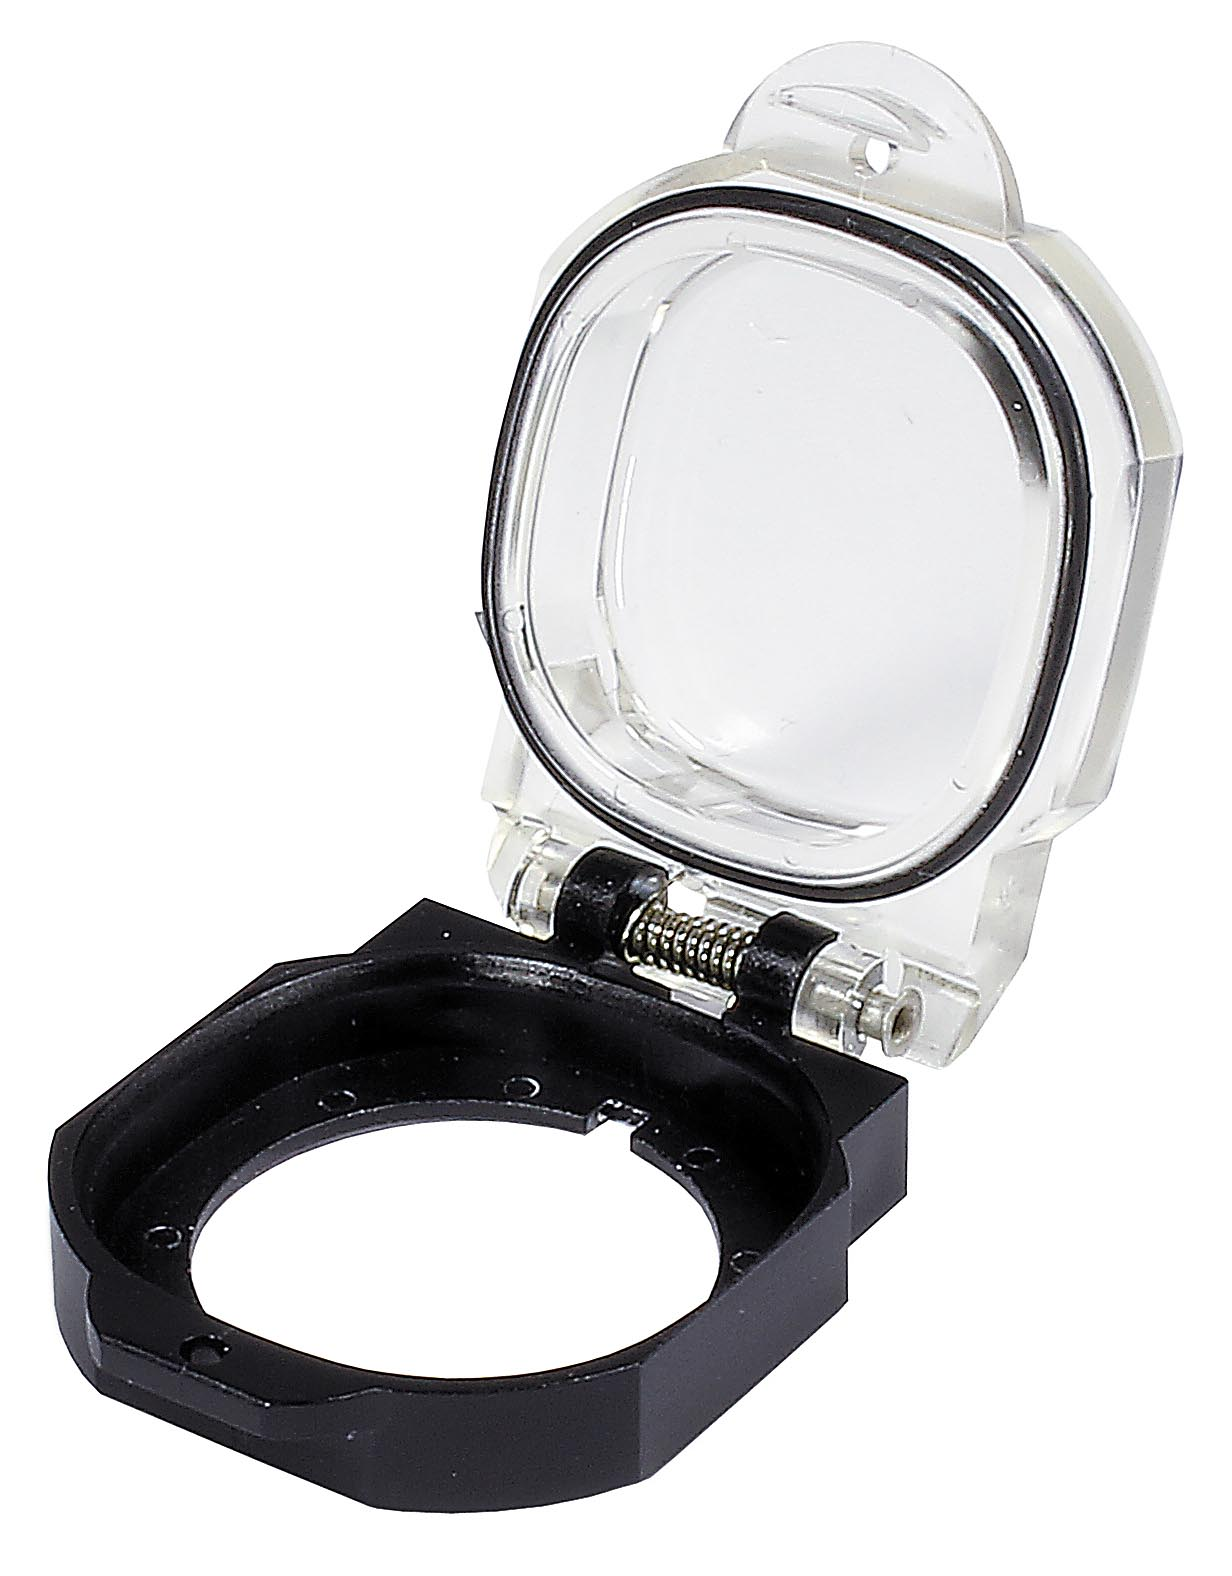 har-port Protective cap transparent